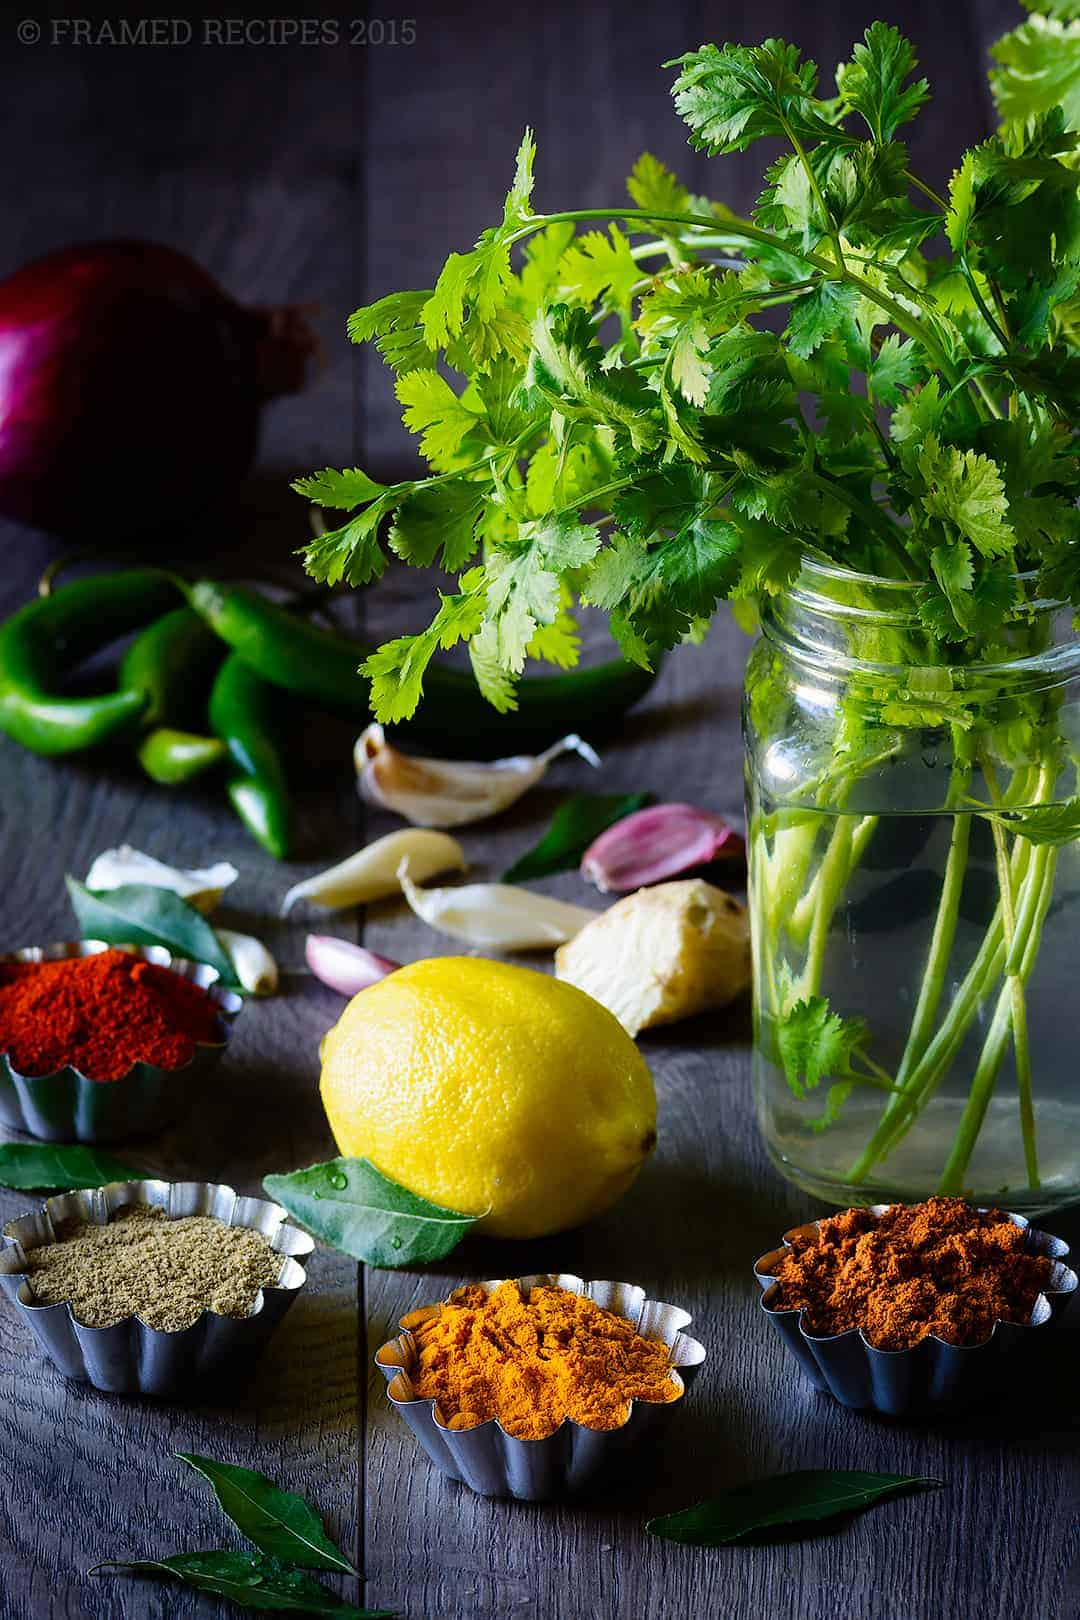 some of the spices and herbs for making cilantro chicken curry -  paprika, garam masala, coriander powder, turmeric powder, ginger, garlic, lemon, cilantro, onion and green chillies.